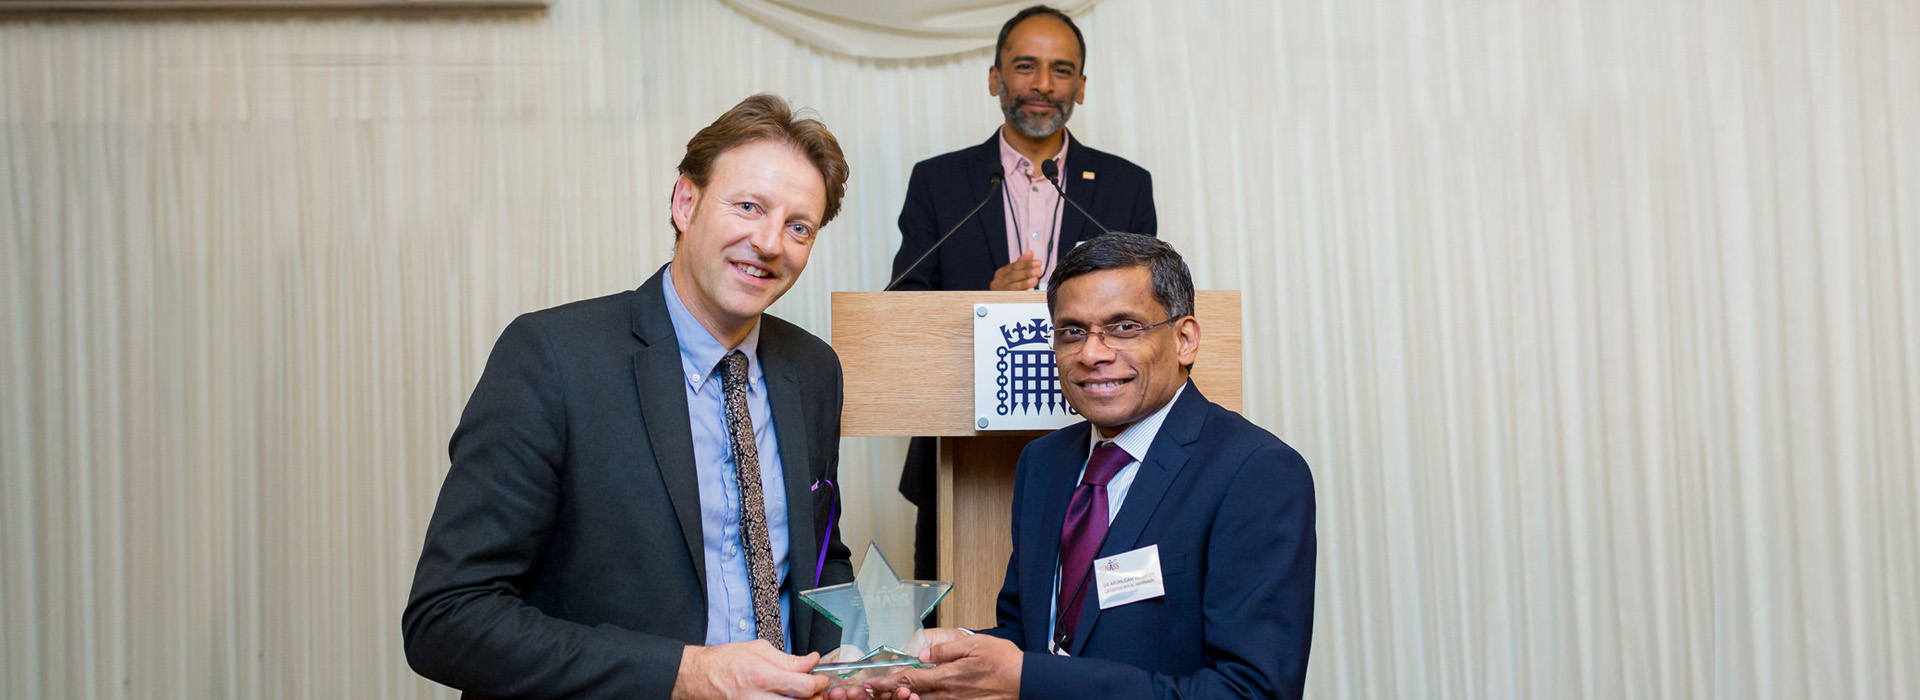 Dr Moorthy & Derek Thomas MP